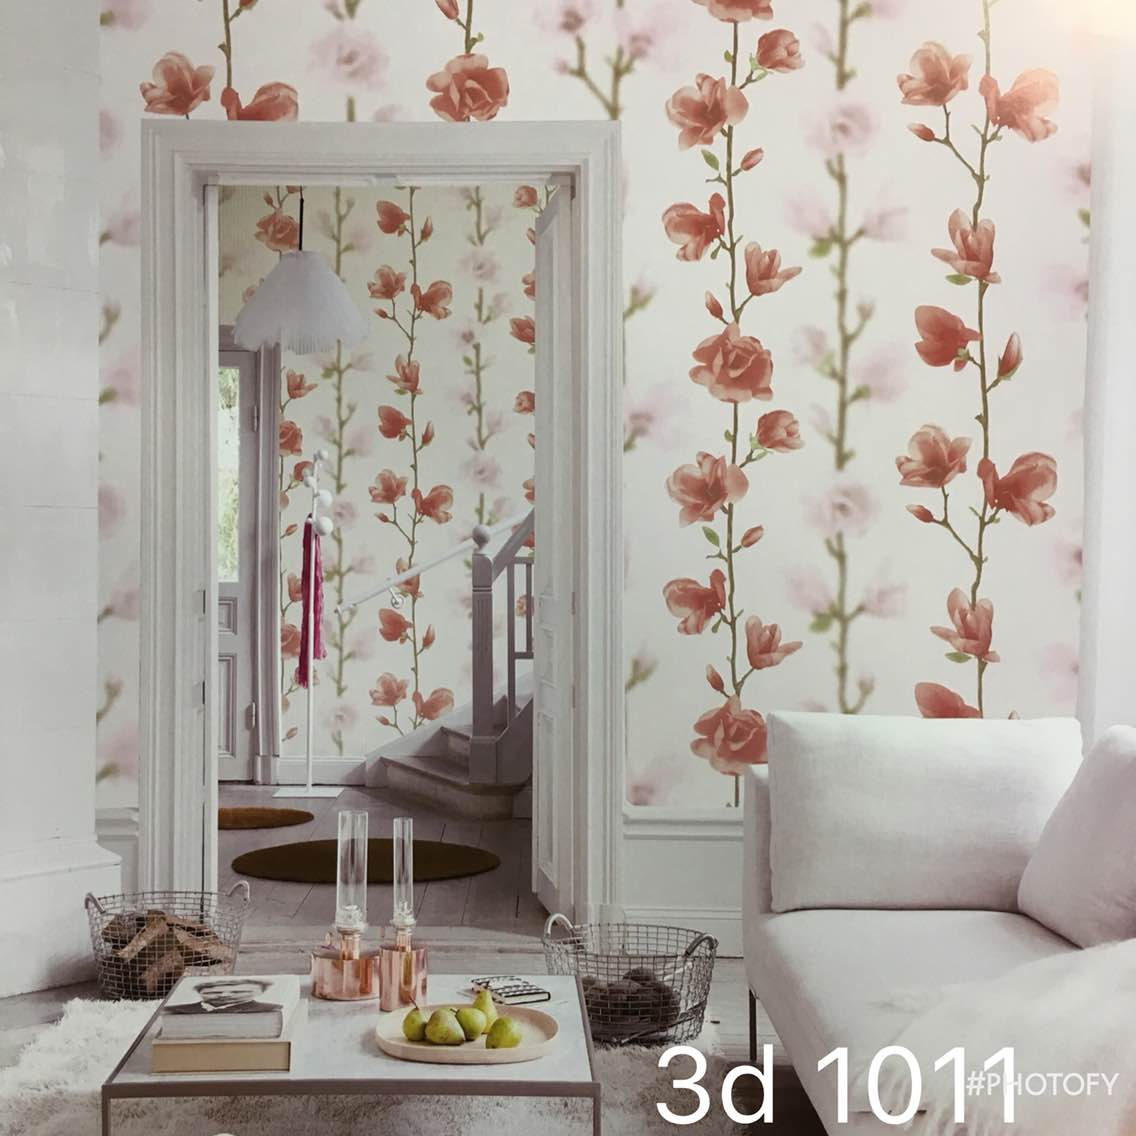 Kalon Wallpaper in Pink flower in Delhi.   A wallpaper with (3d1011) pink Flower for Girls Room.  Make her Happy to change the walls with this Beautiful Imported wallpaper.   To buy call us-  Wallparadise- Kalon Imported Walpaper Supplier in India.